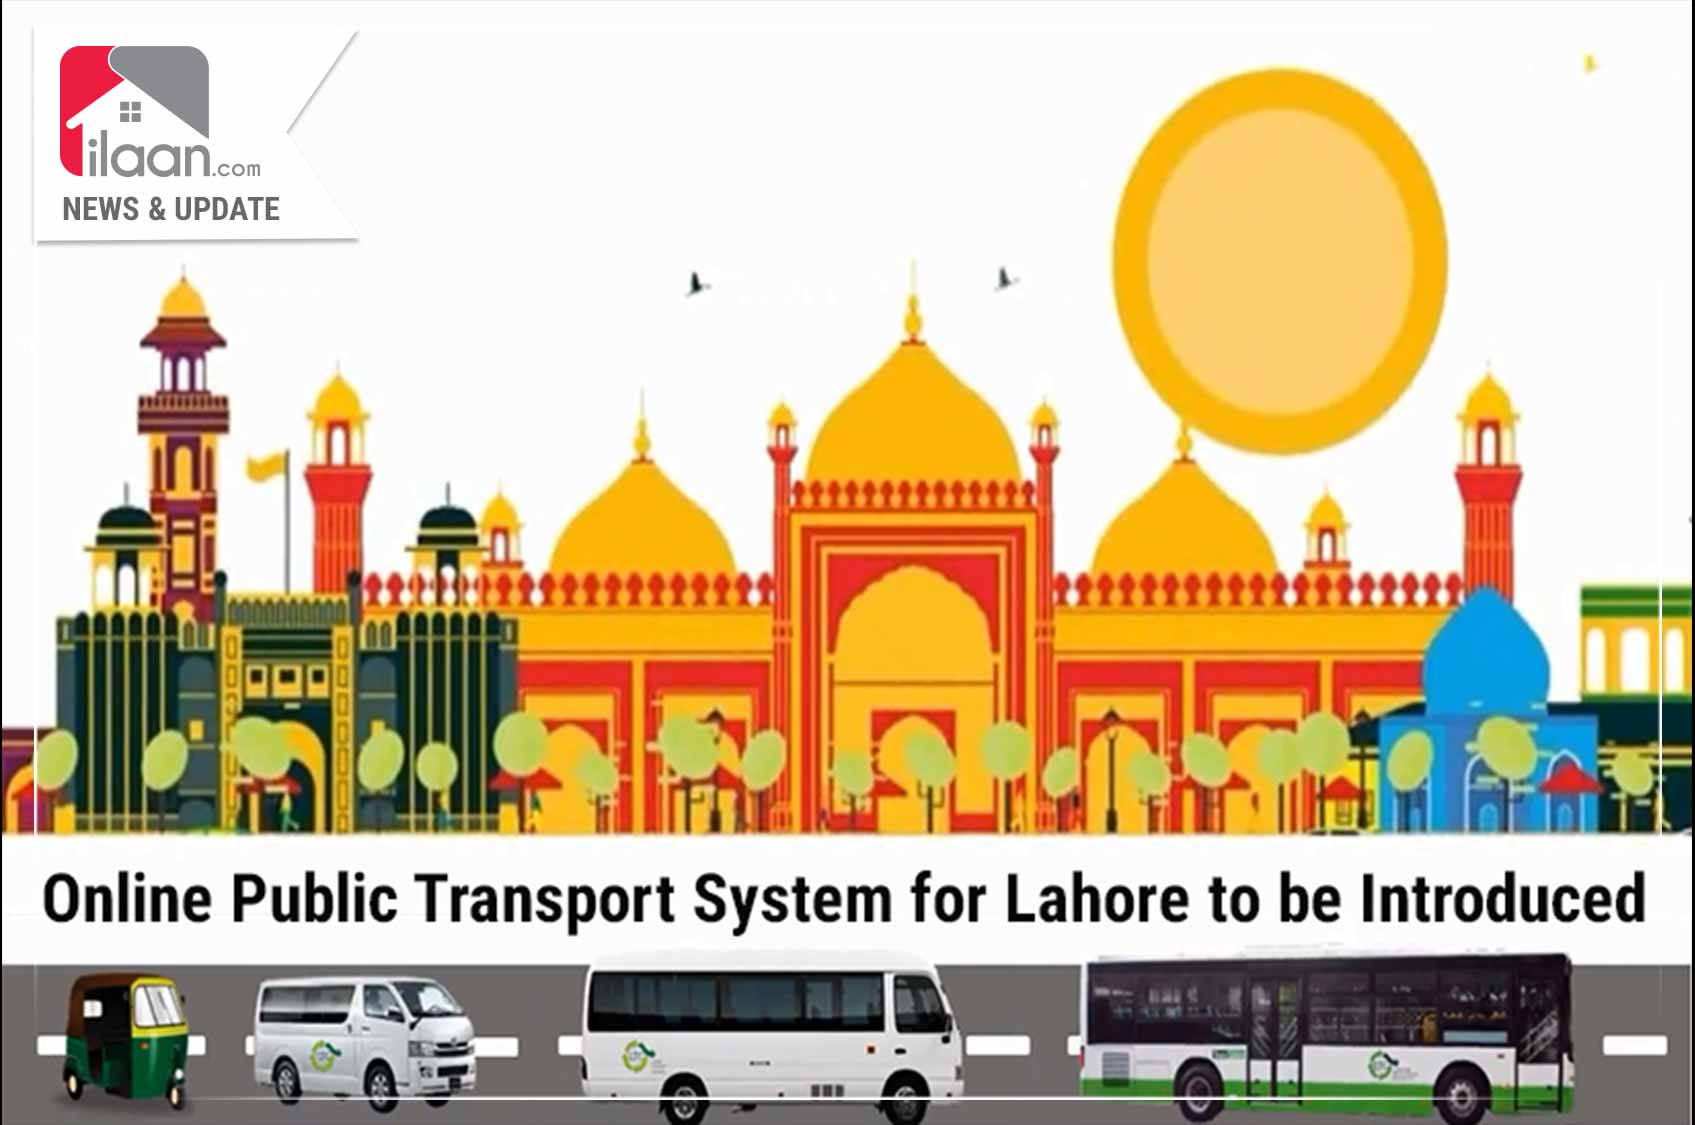 Online Public Transport System for Lahore to be Introduced